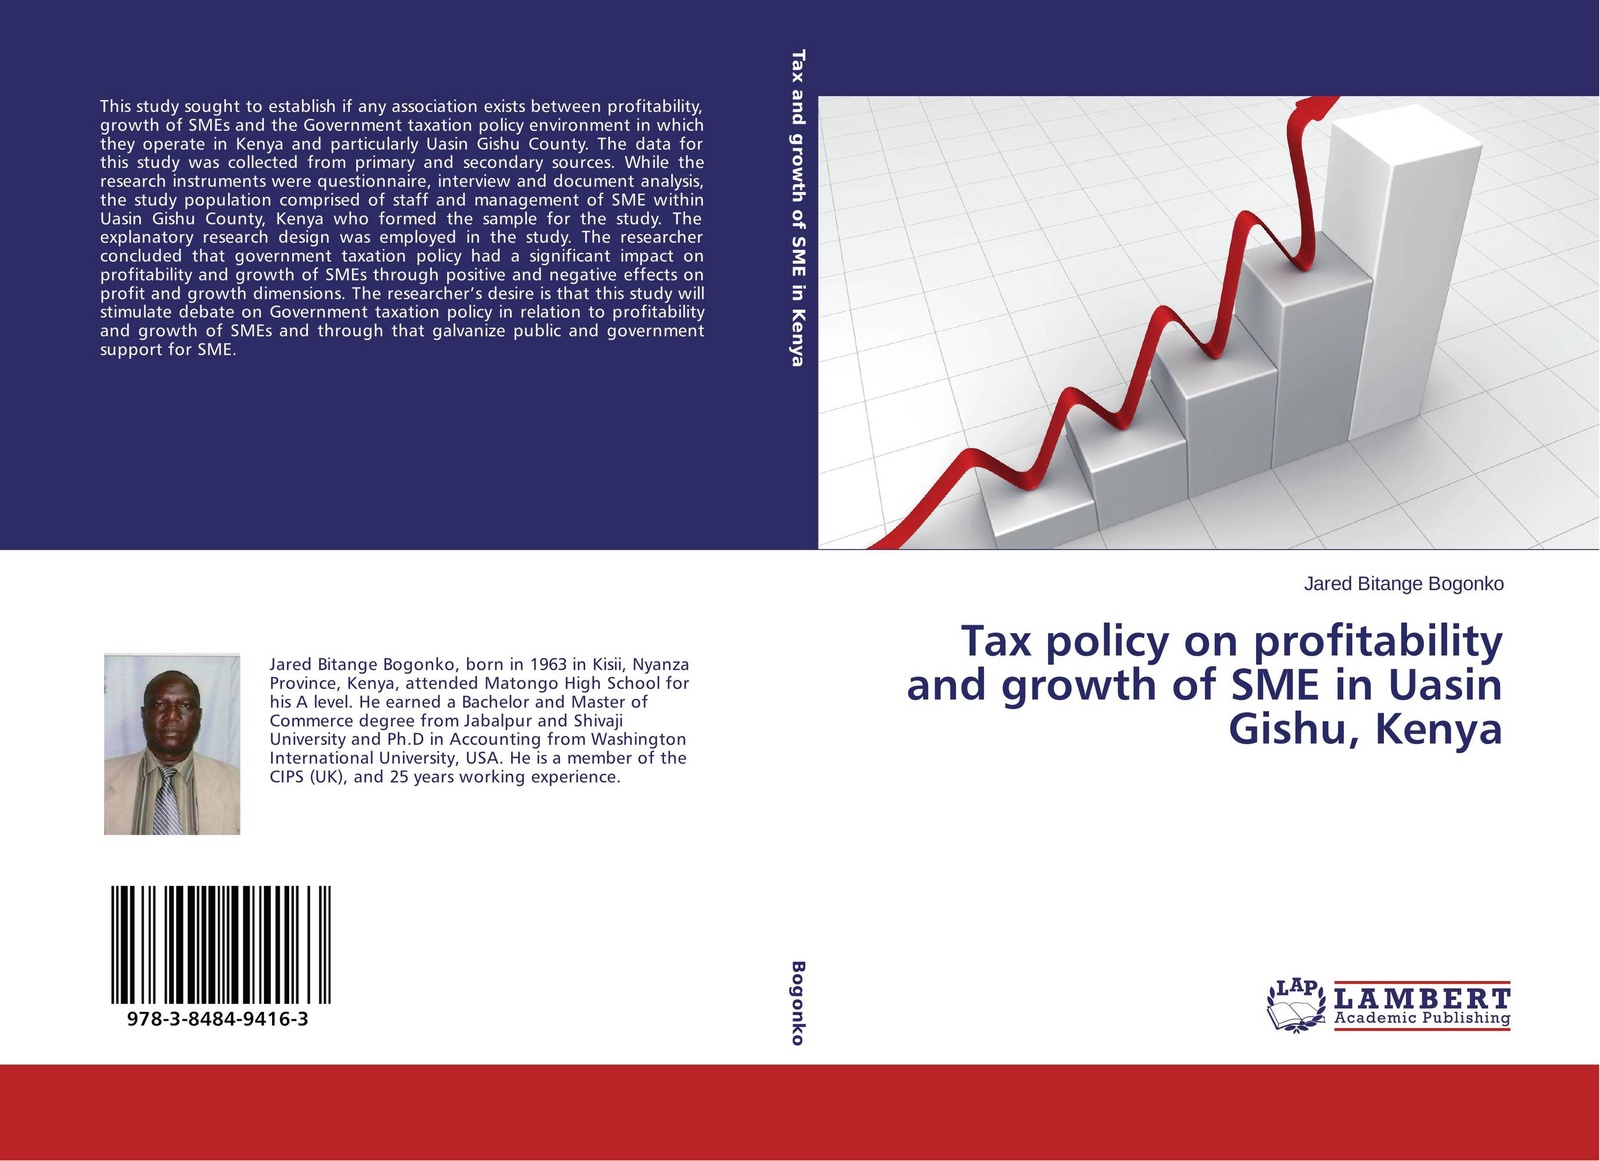 Jared Bitange Bogonko Tax policy on profitability and growth of SME in Uasin Gishu, Kenya whether profit is the only determinant of performance a study on smes